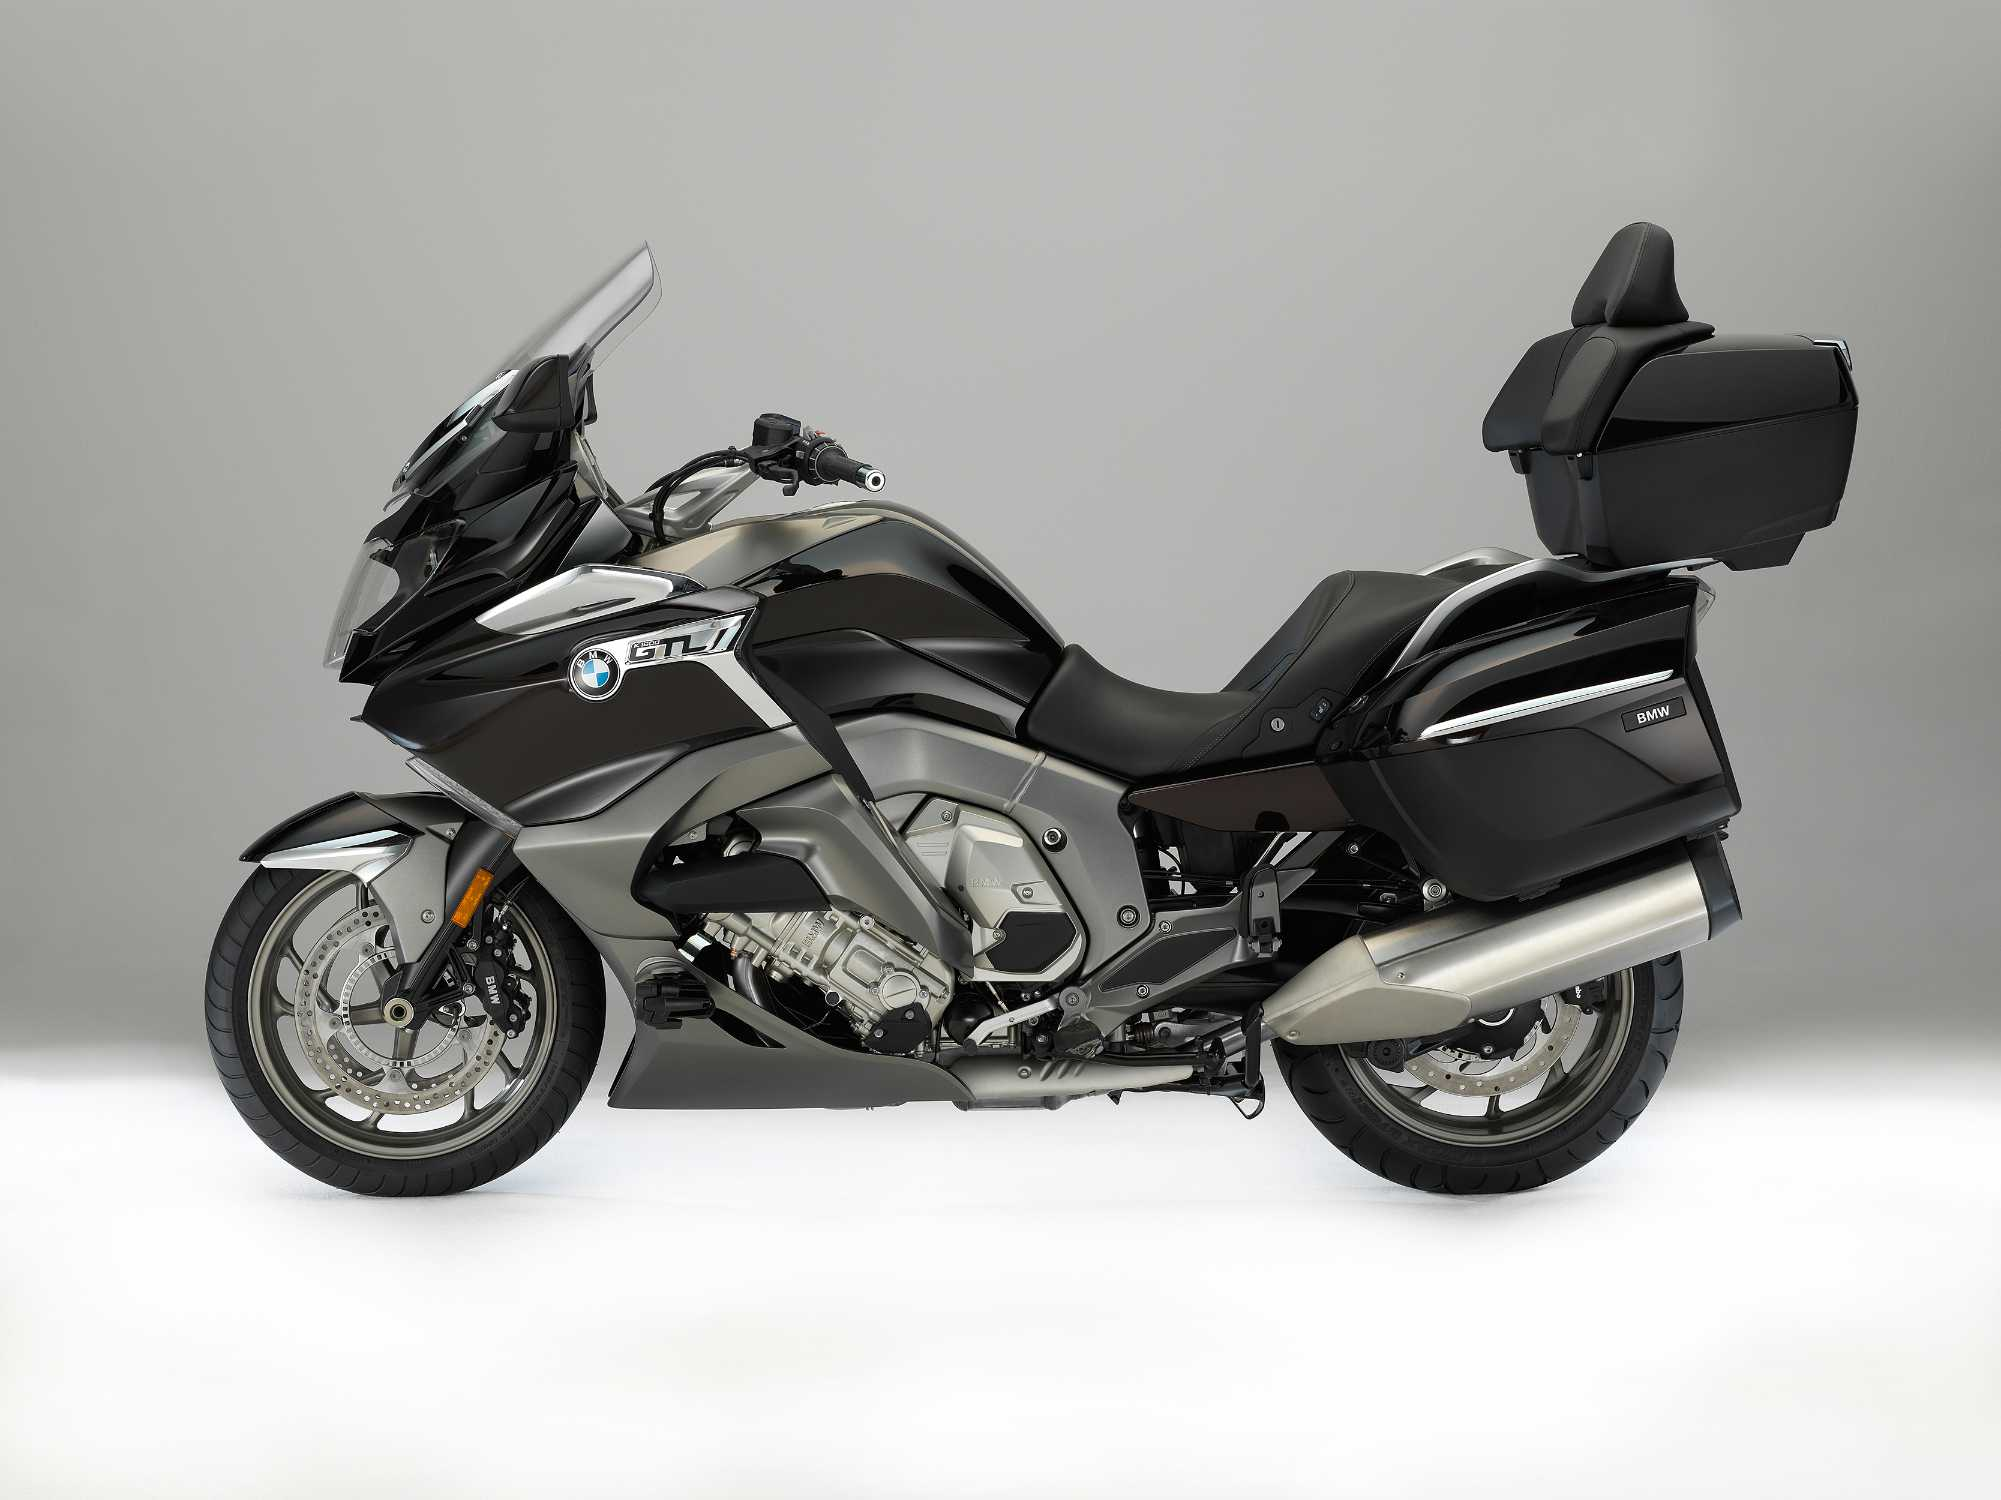 Bmw Motorrad Presents The New Bmw K 1600 Gtl The Luxurious Performance Touring Bike Has Been Further Refined And Optimised